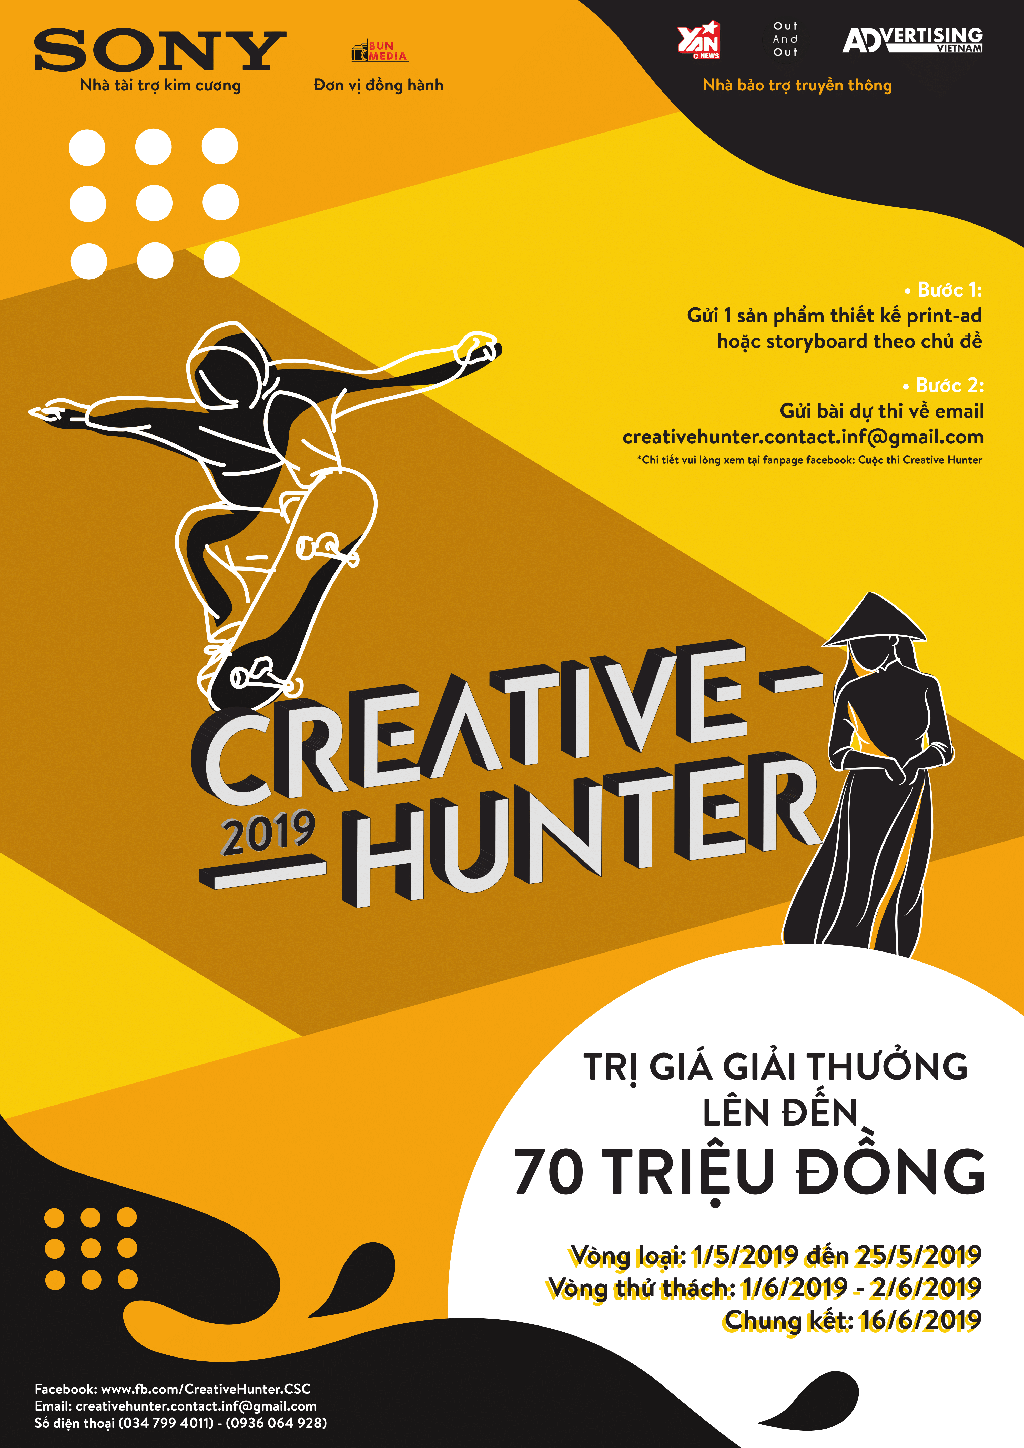 cuoc-thi-sang-tao-creative-hunter-2019-01